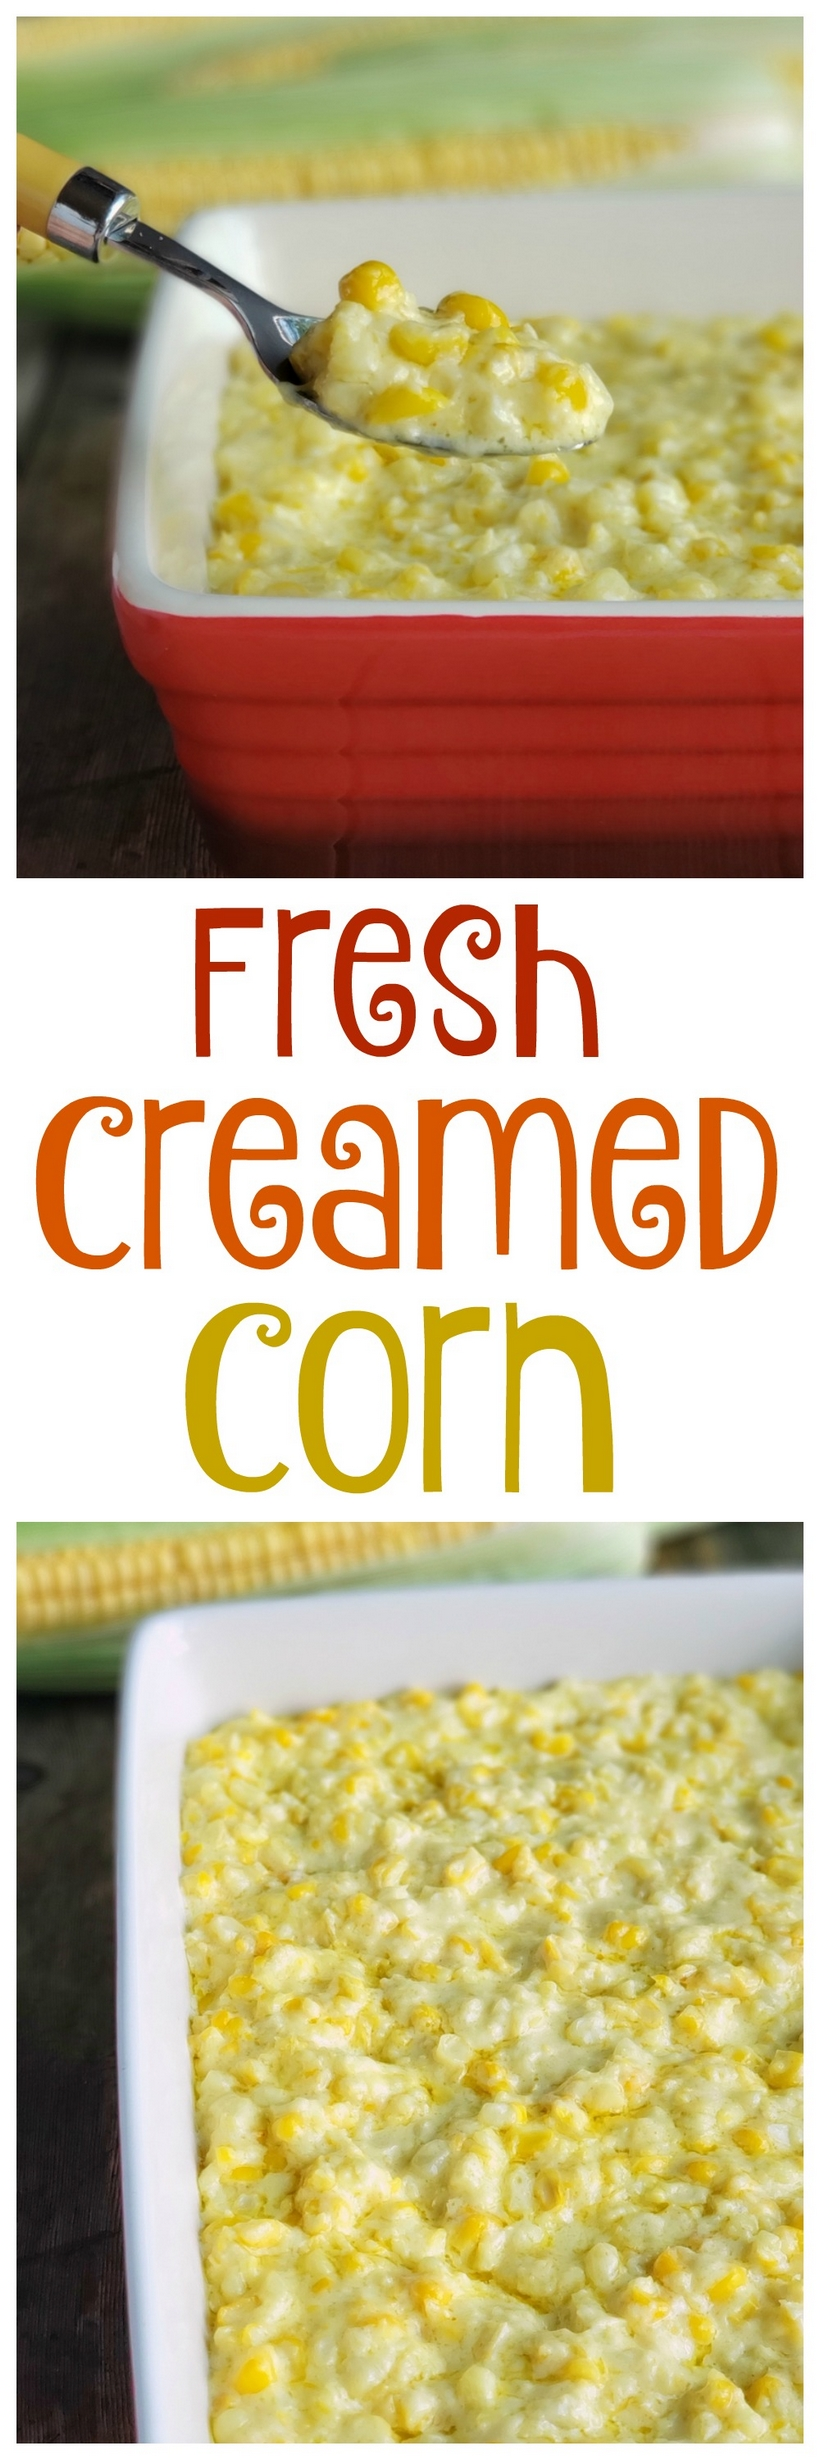 Fresh creamed corn in text with creamed corn in red serving dish overhead and from the side.